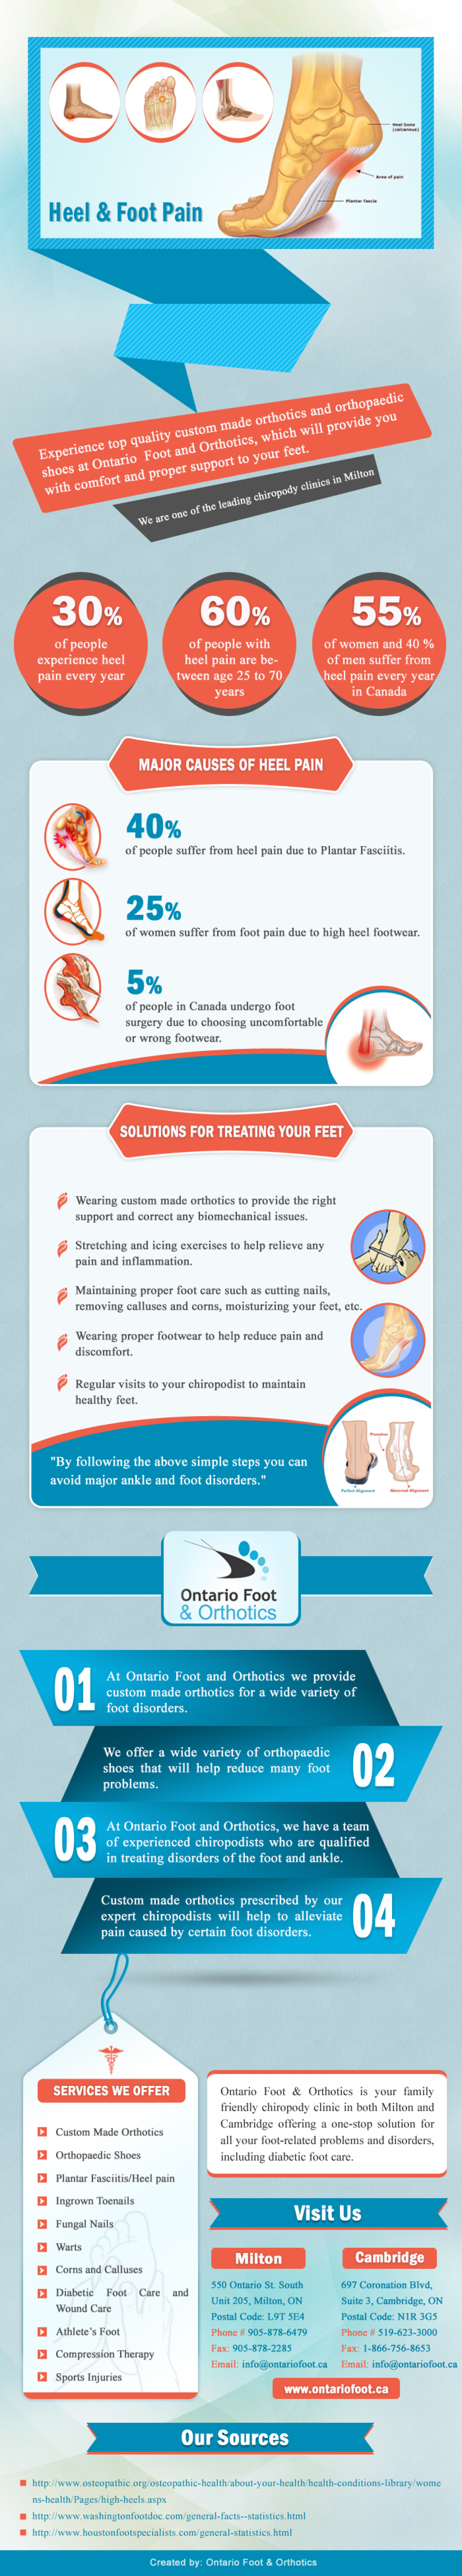 Heel & Foot Pain Infographic